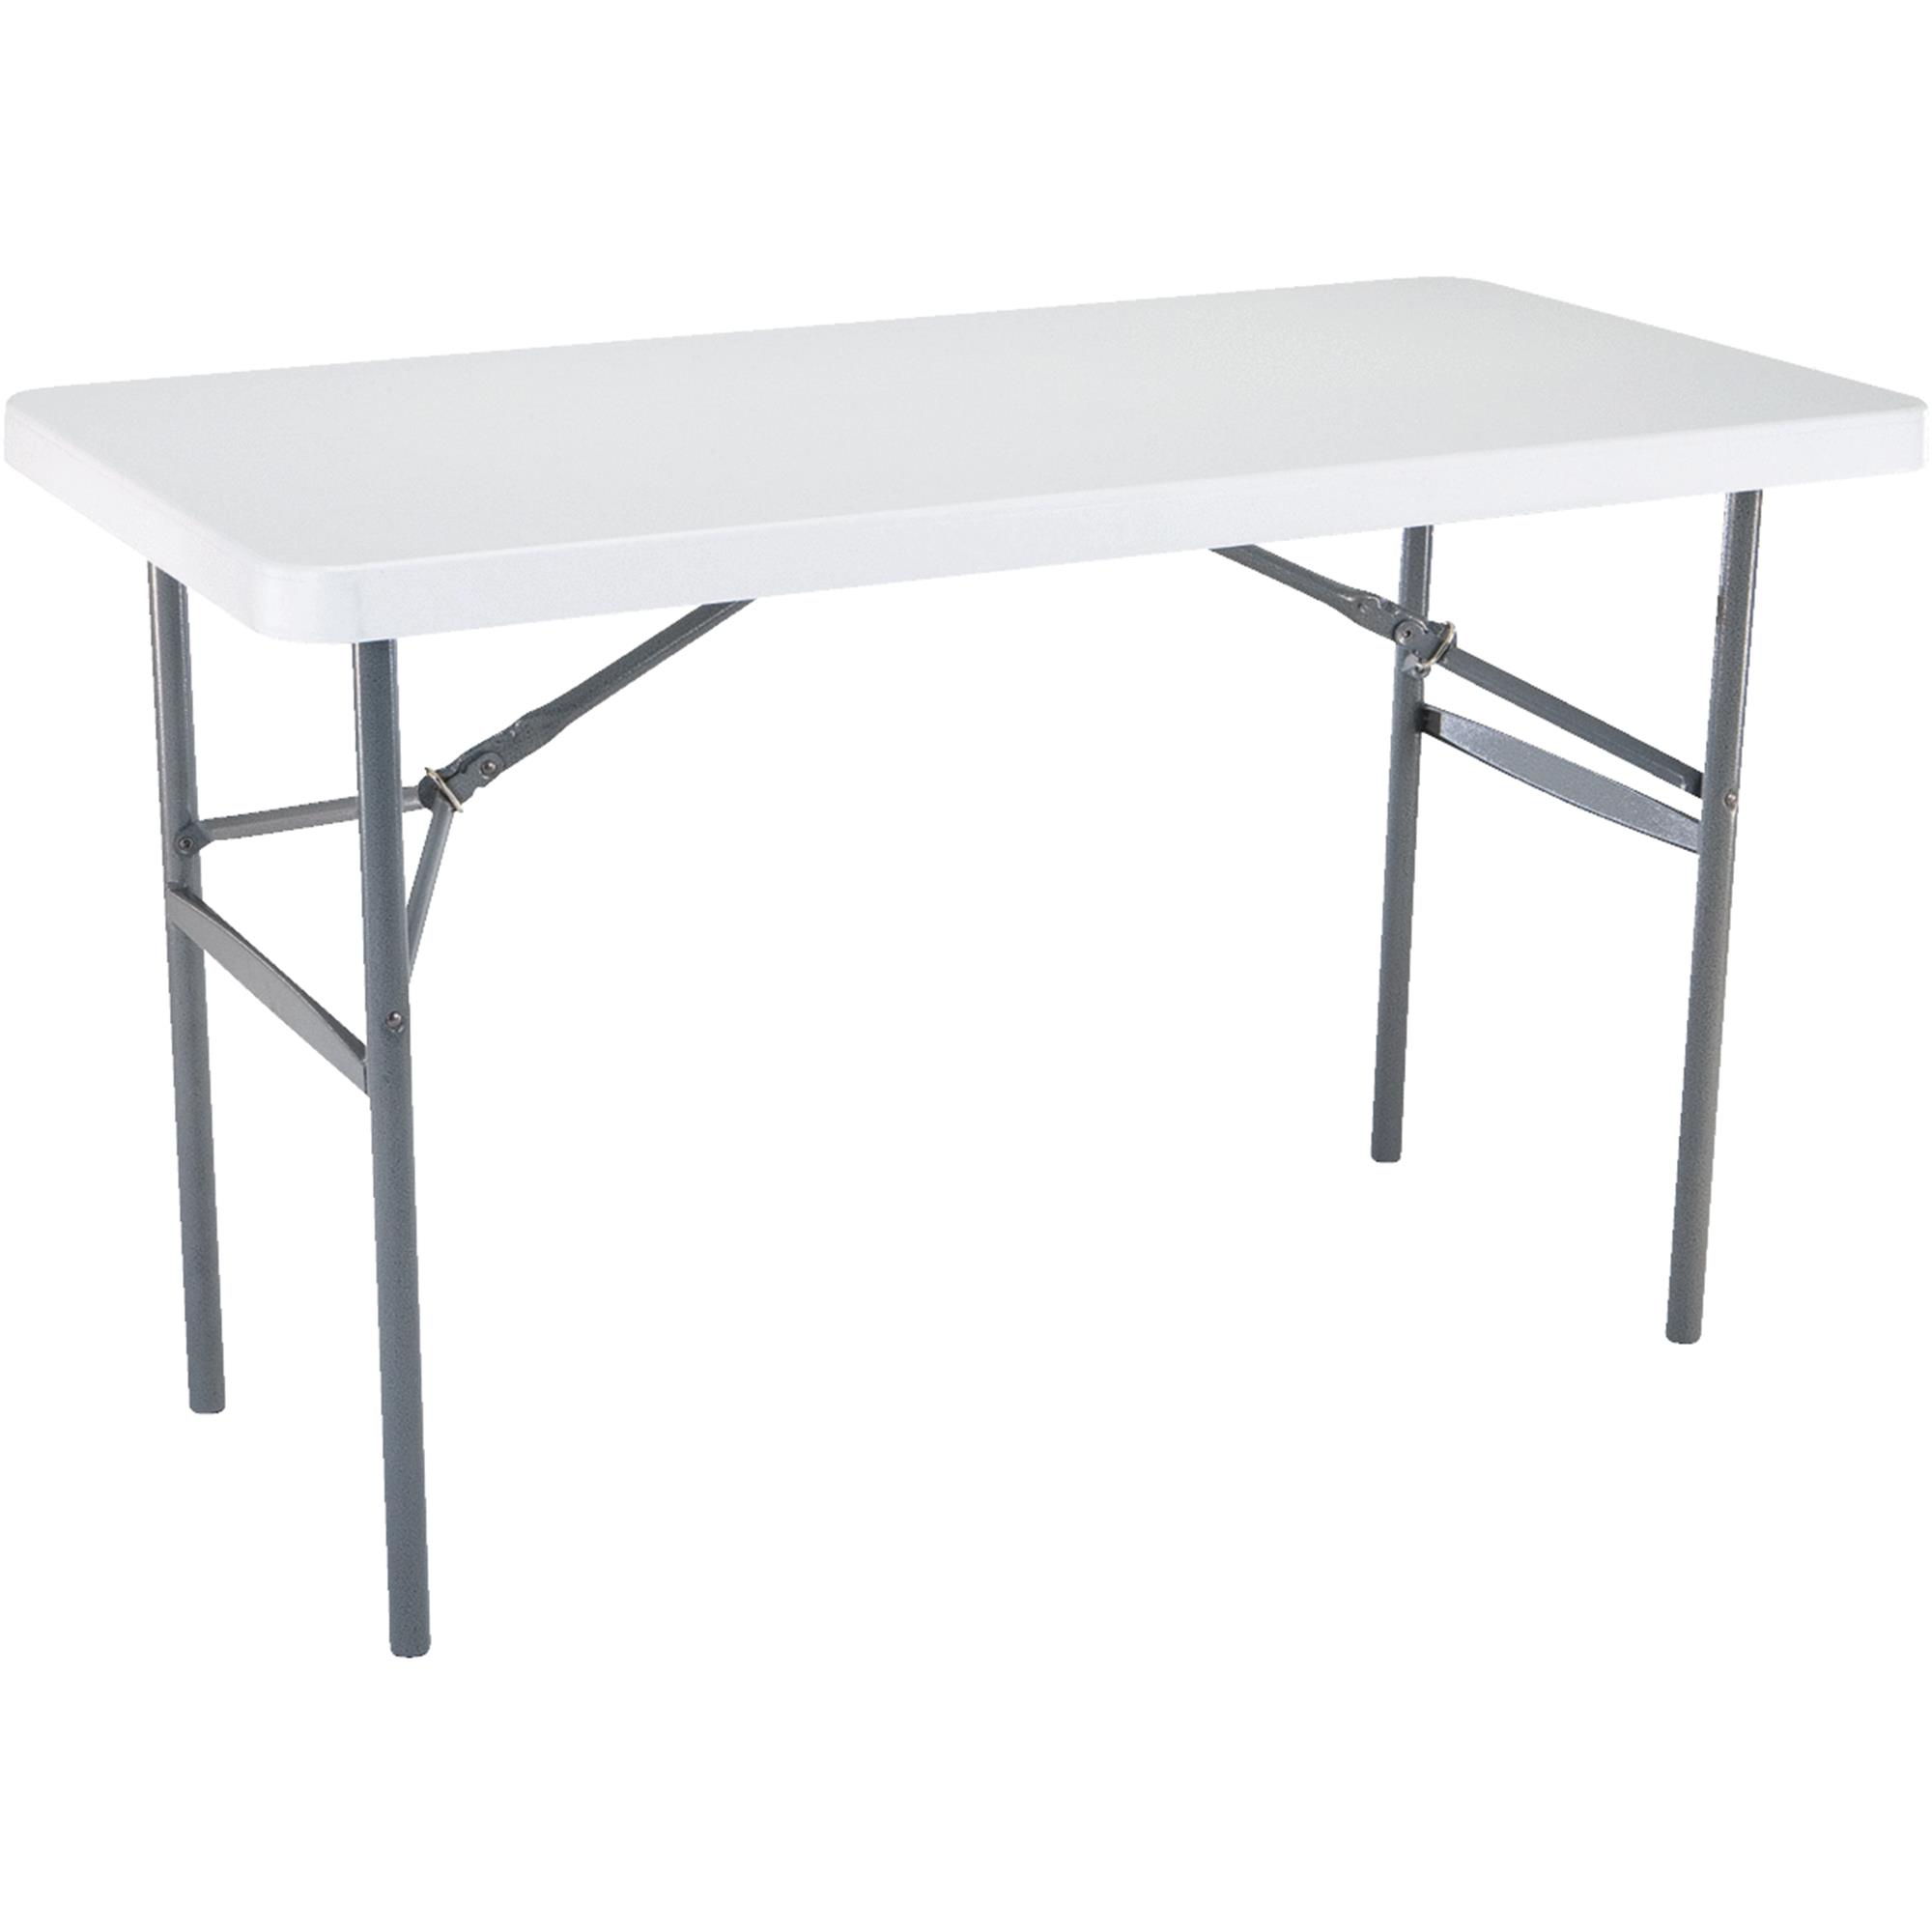 lifetime 4-foot folding table, light commercial, white granite